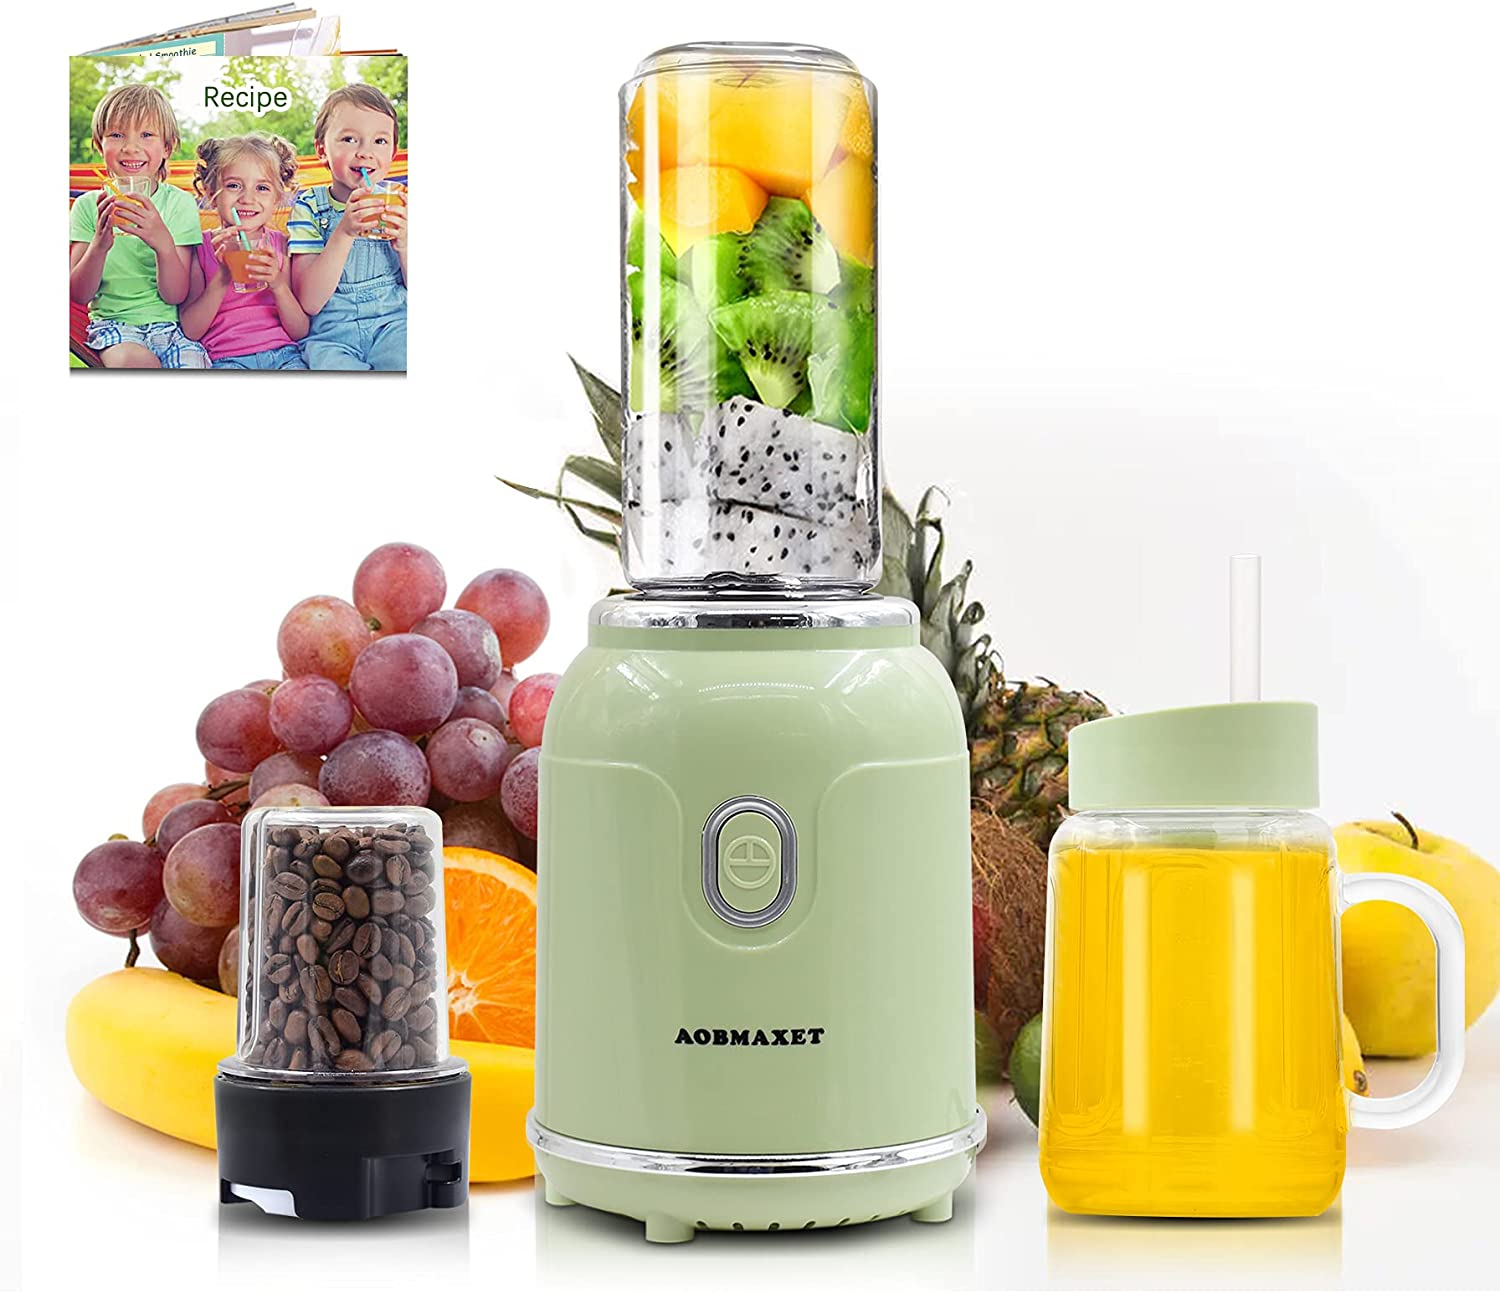 Smoothie Blender - Personal Blender with Recipe, Coffee Grinder, Travel Cup (18/20 Oz ), Professional Smoothie Maker for Shake, Spices, Fruit and Bean Coffee, 300W, Green